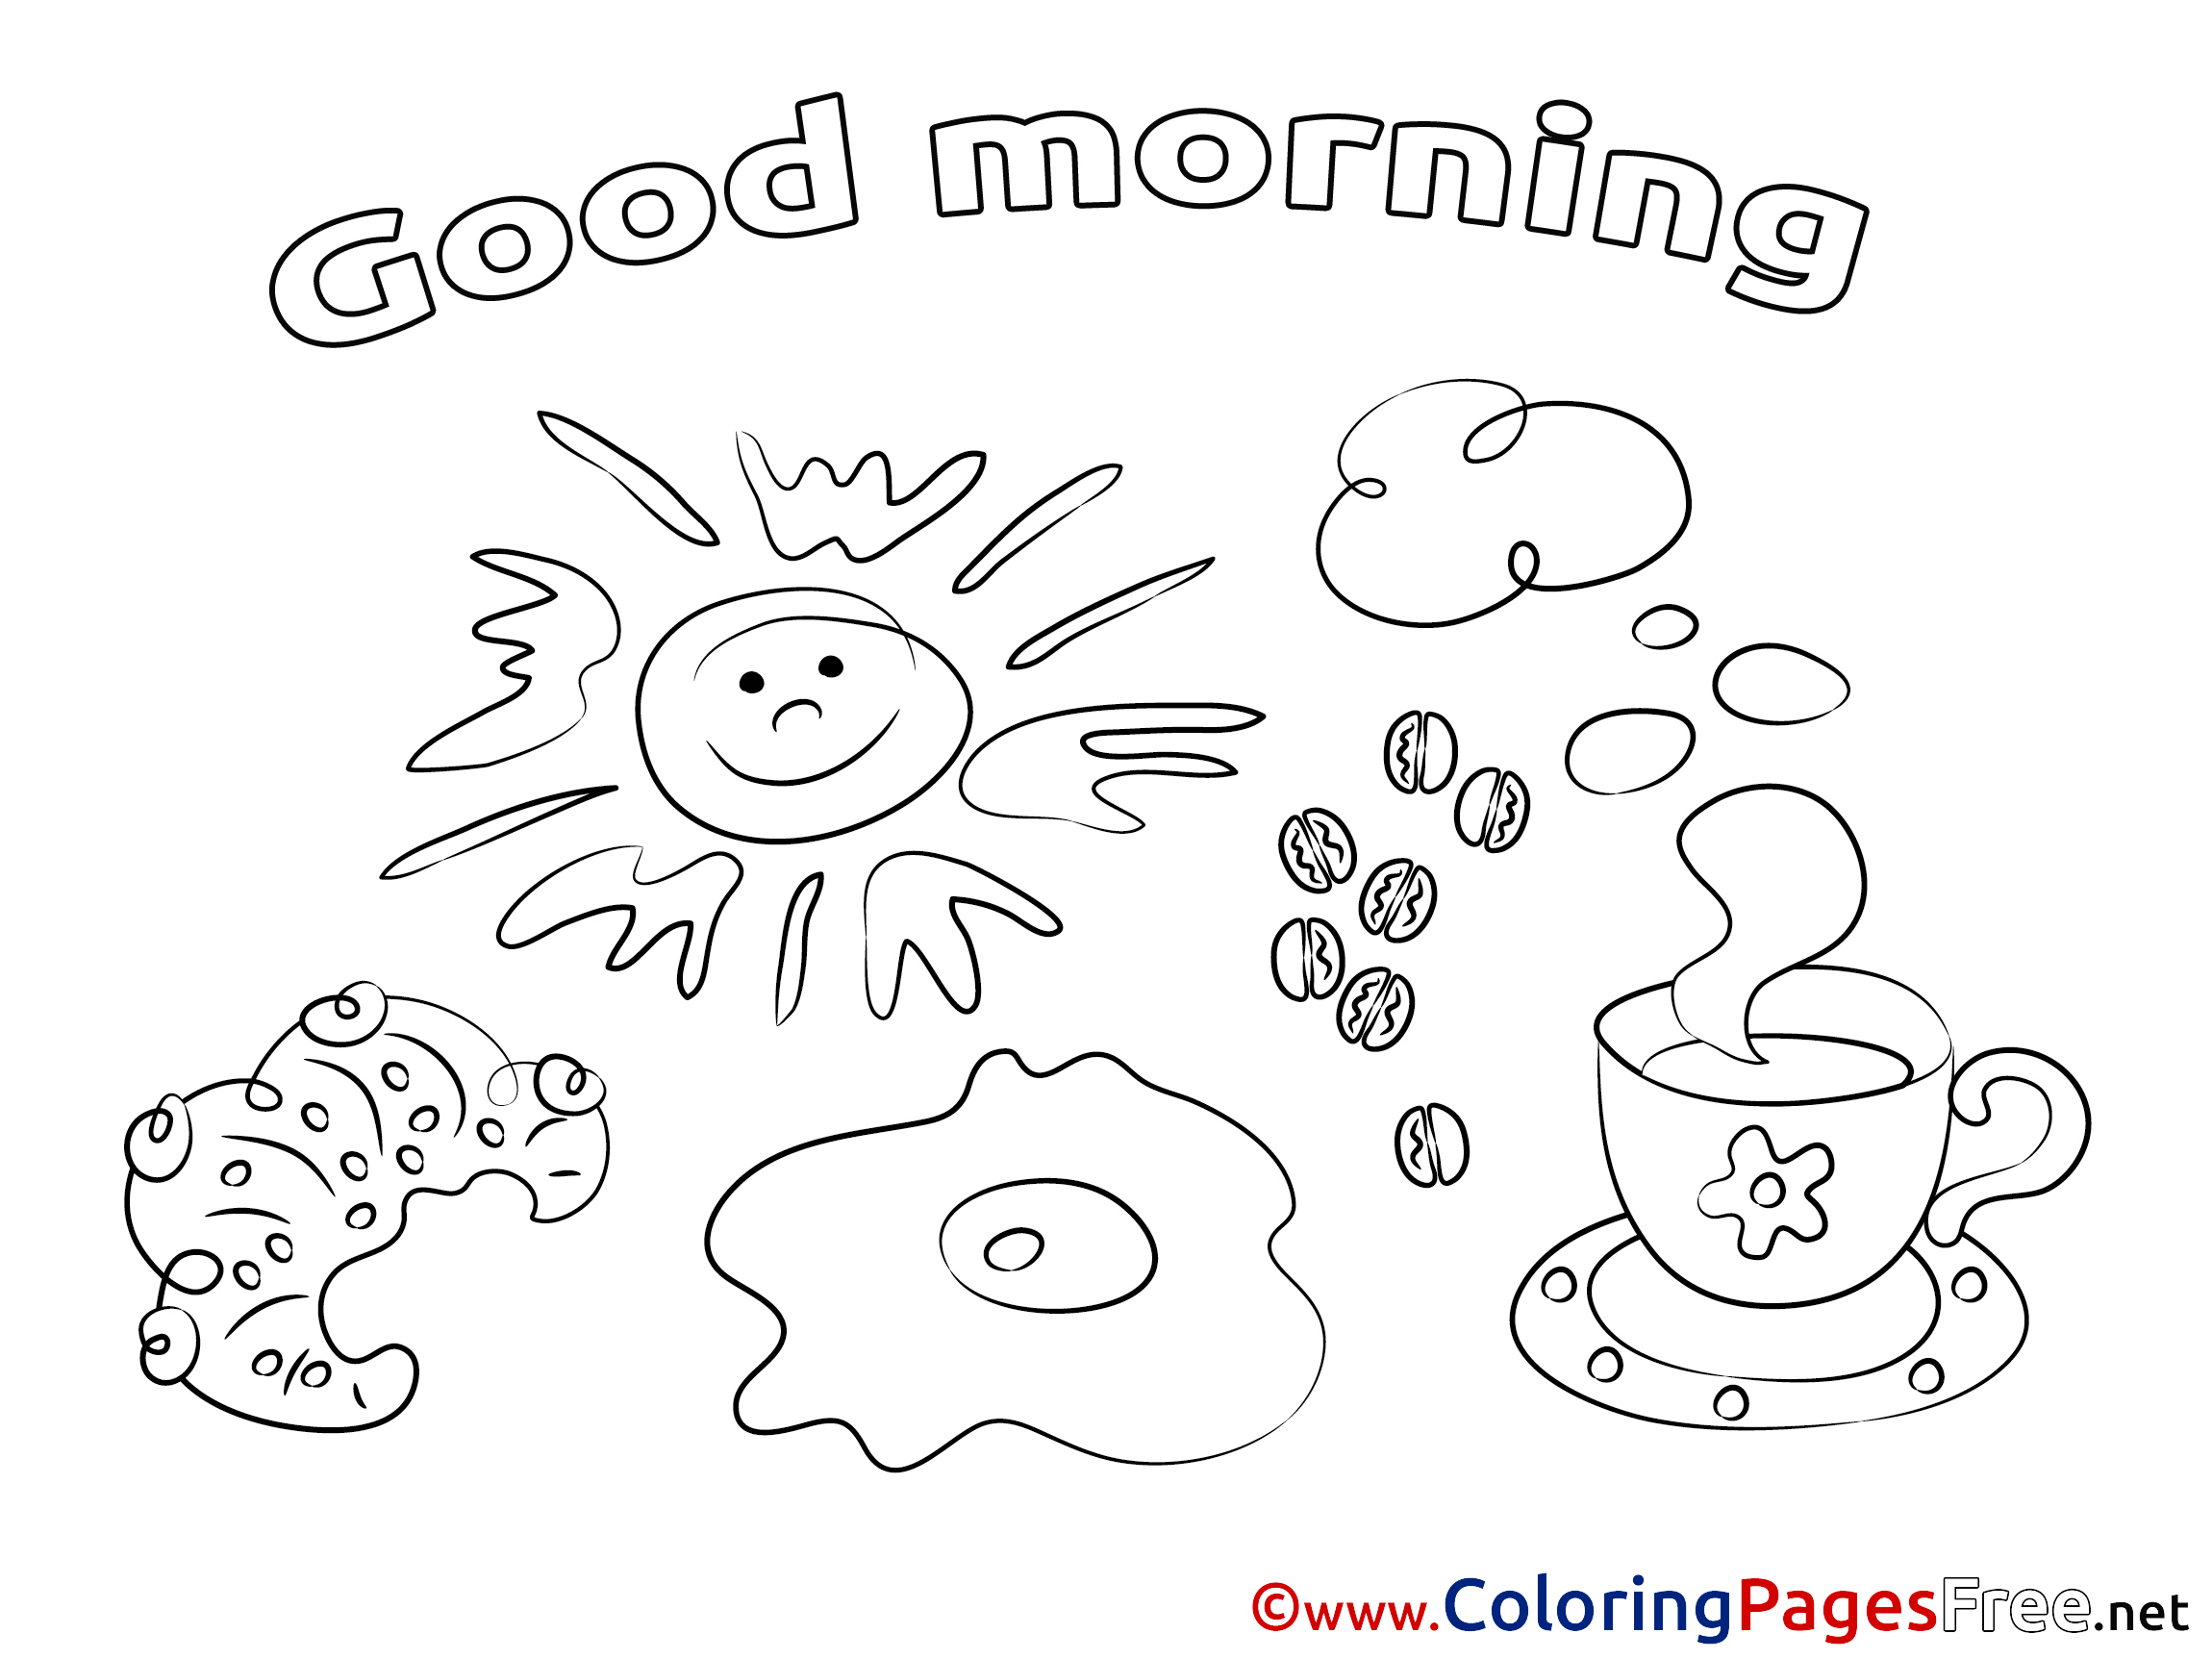 87 Free Coloring Page For The Good Samaritan